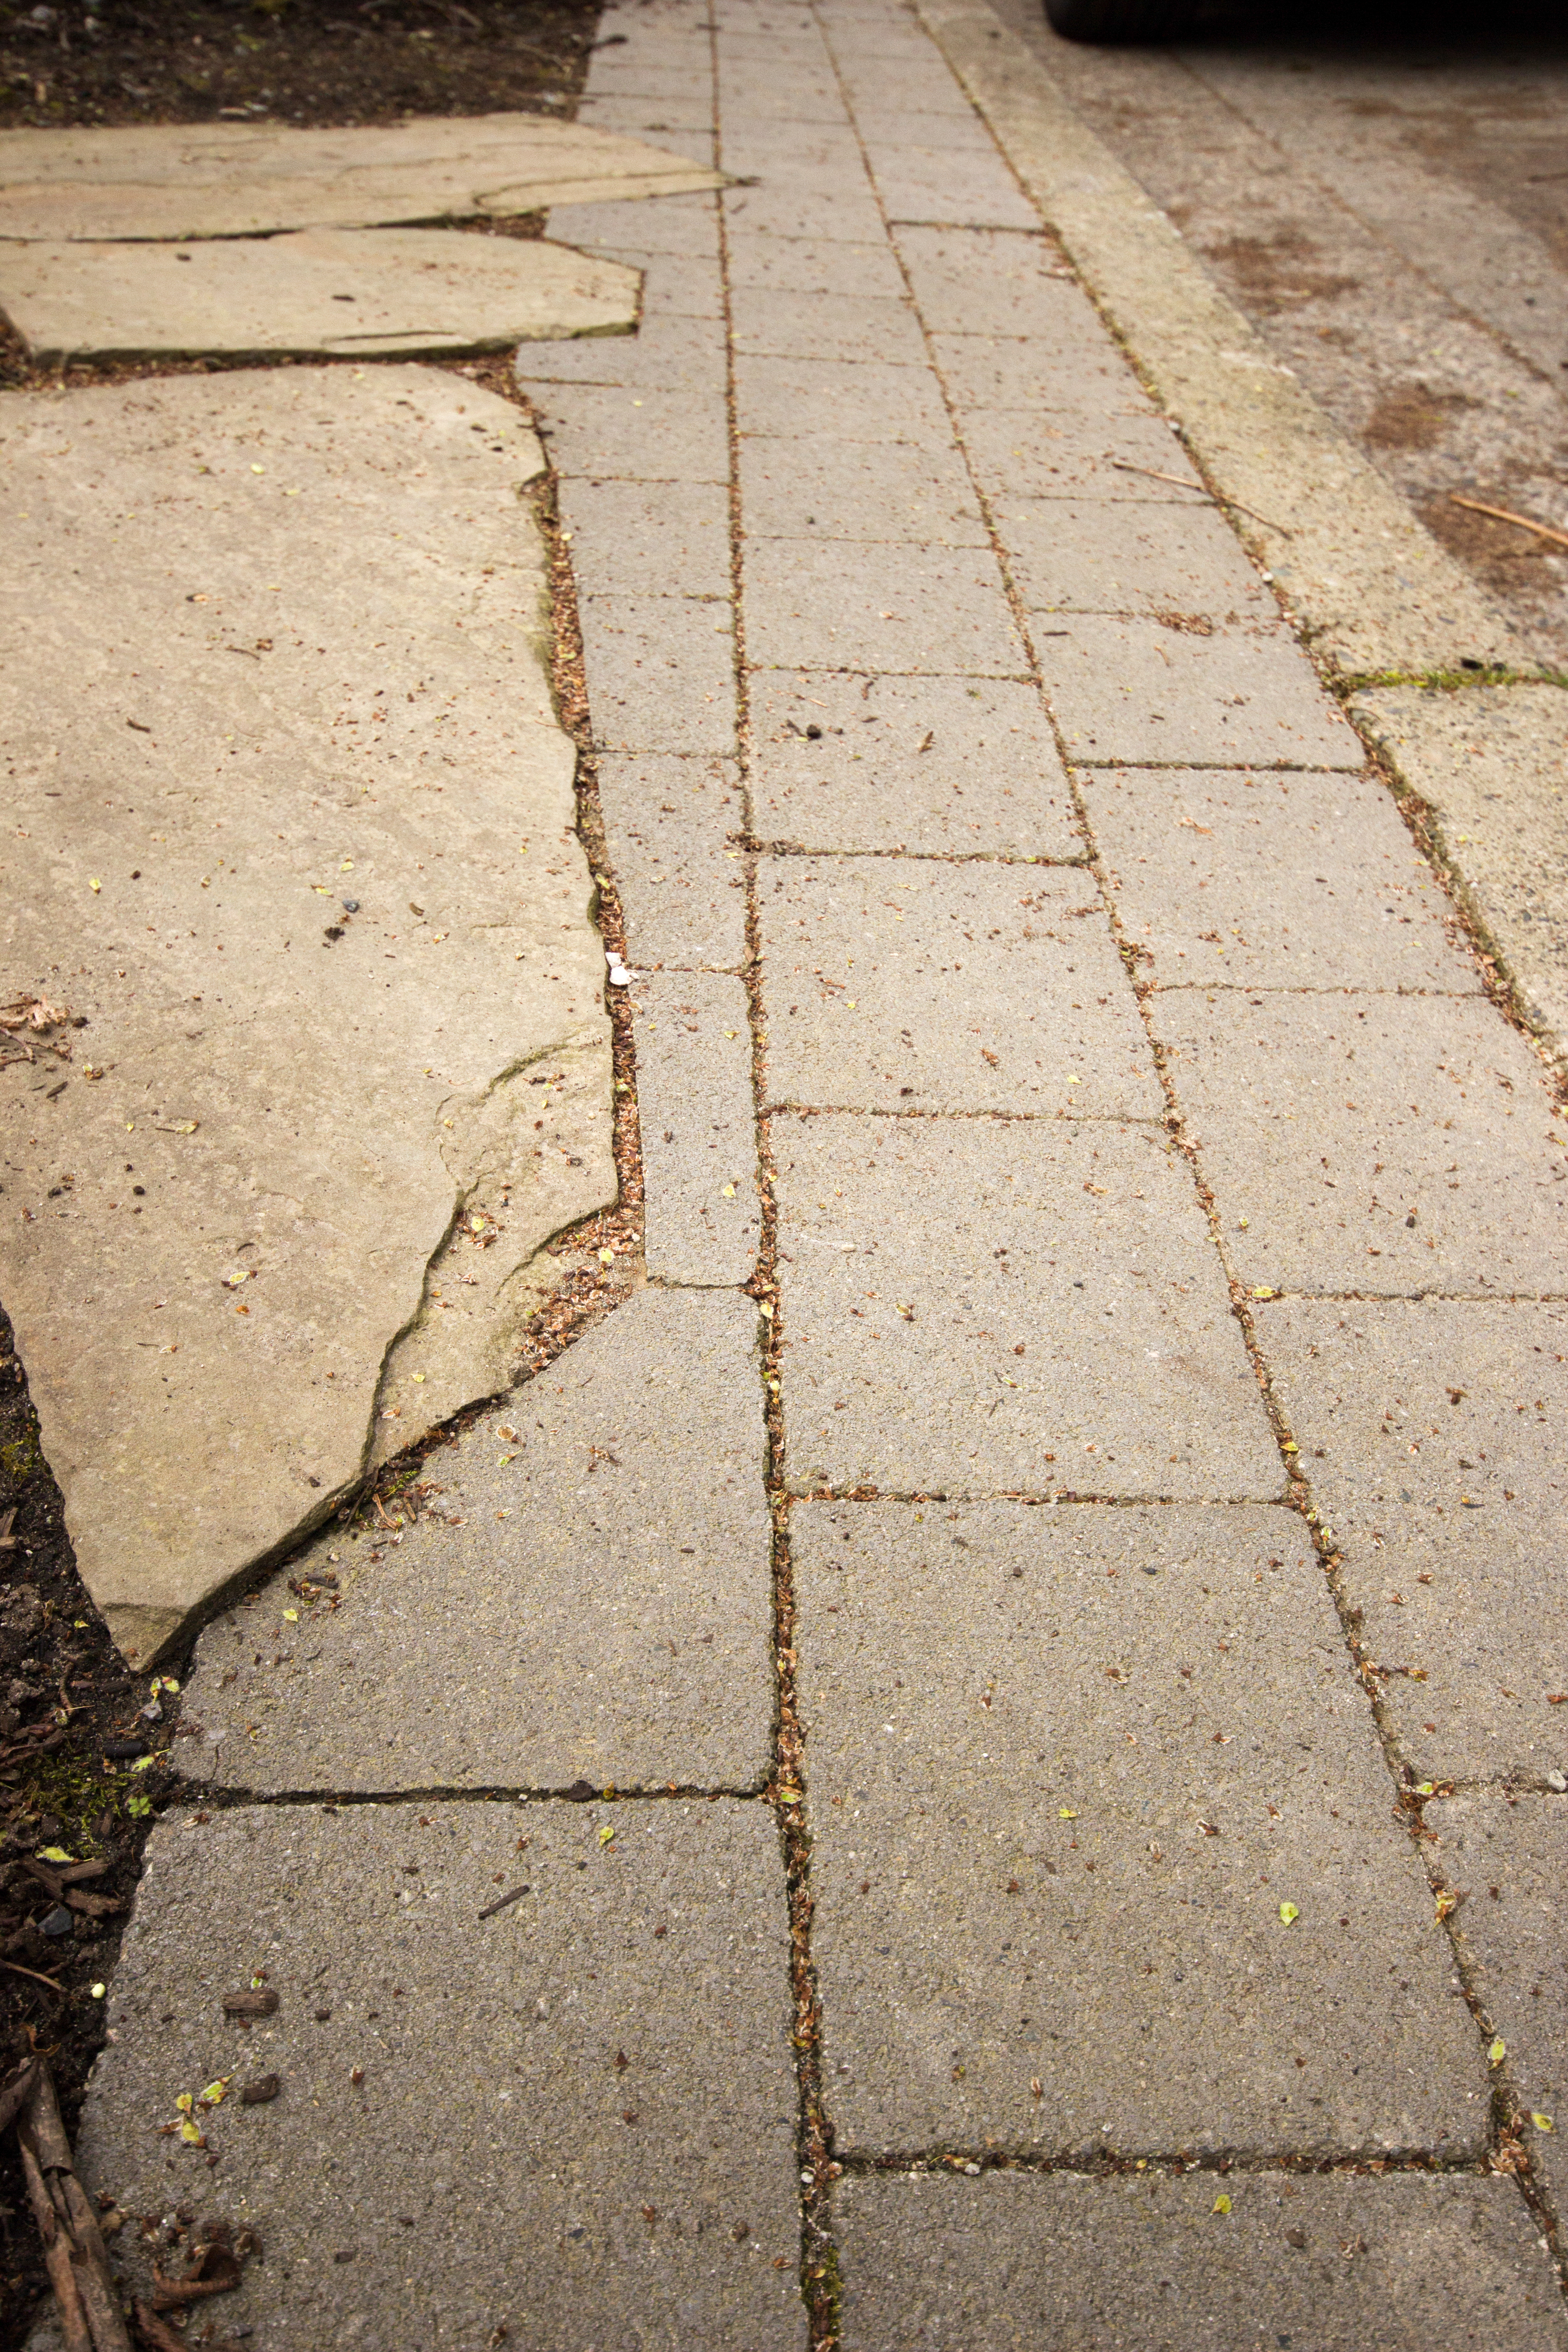 Flagstone meets paver pathway